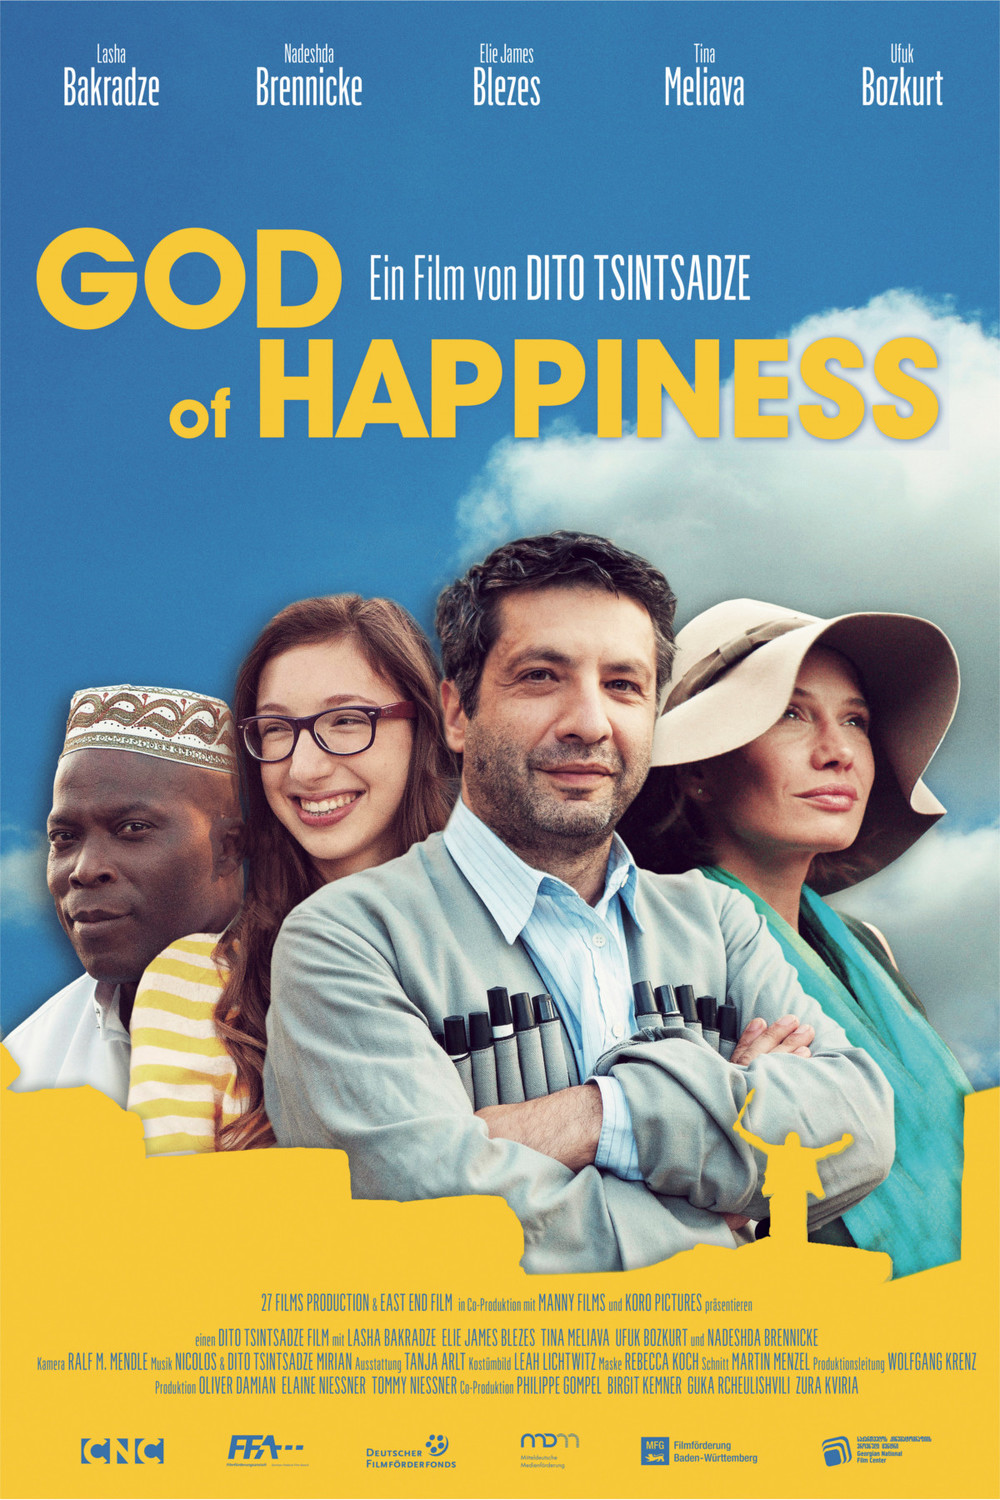 2015_God_of_Happiness_27_Films_Production.jpg